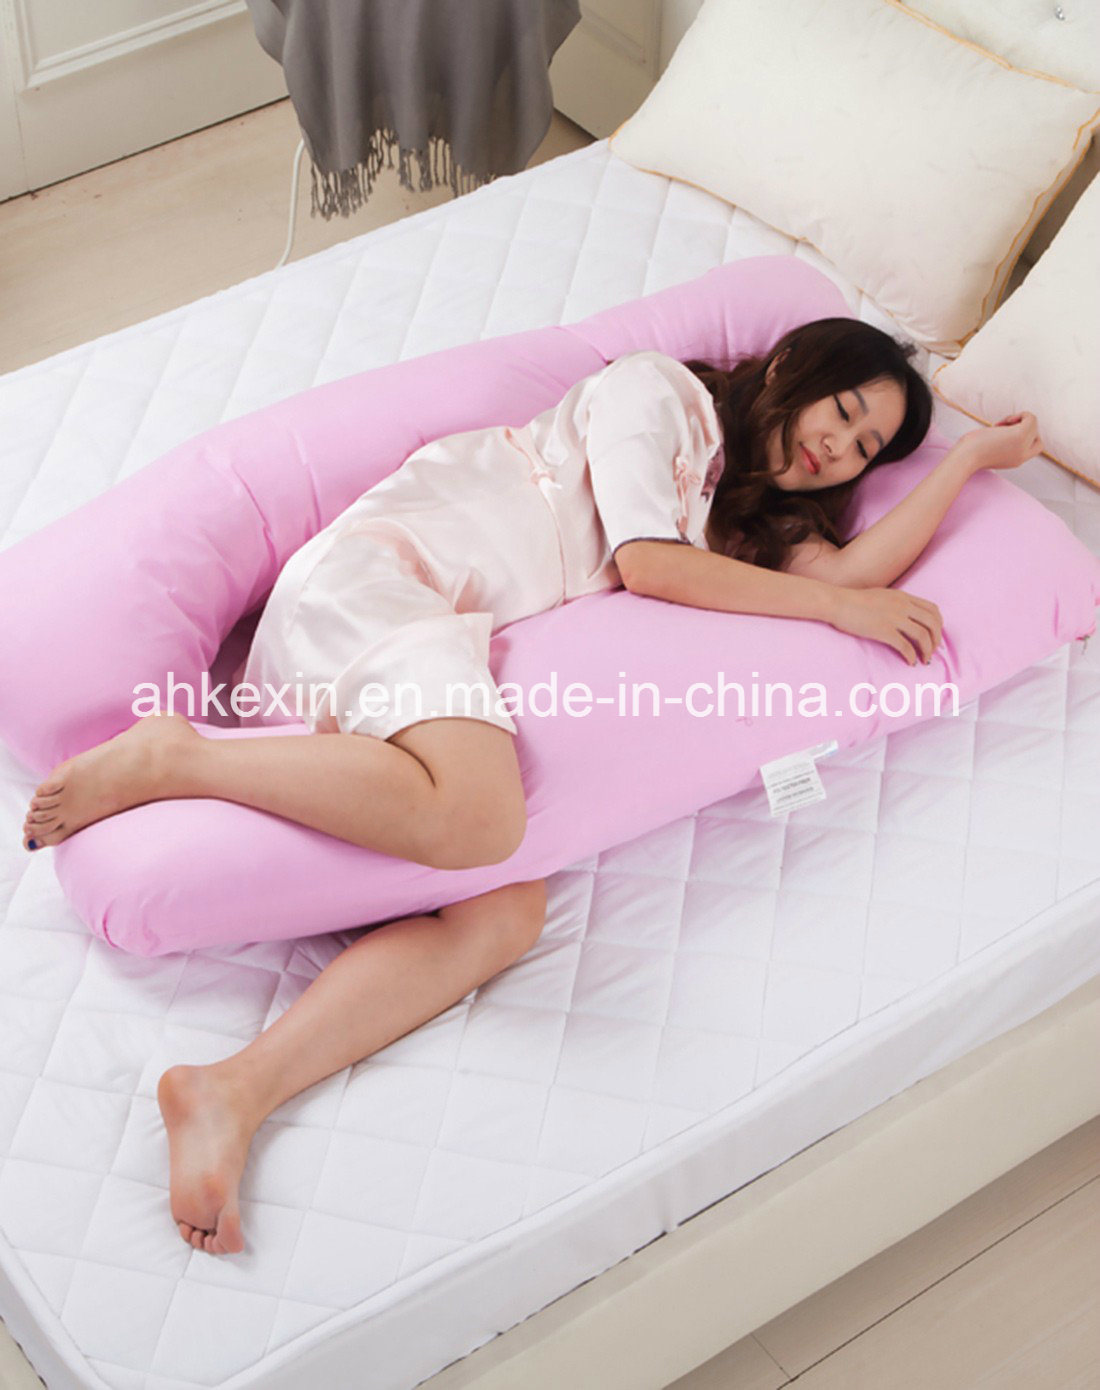 U-Type Shape Pregnancy Pillow with Cotton Fabric